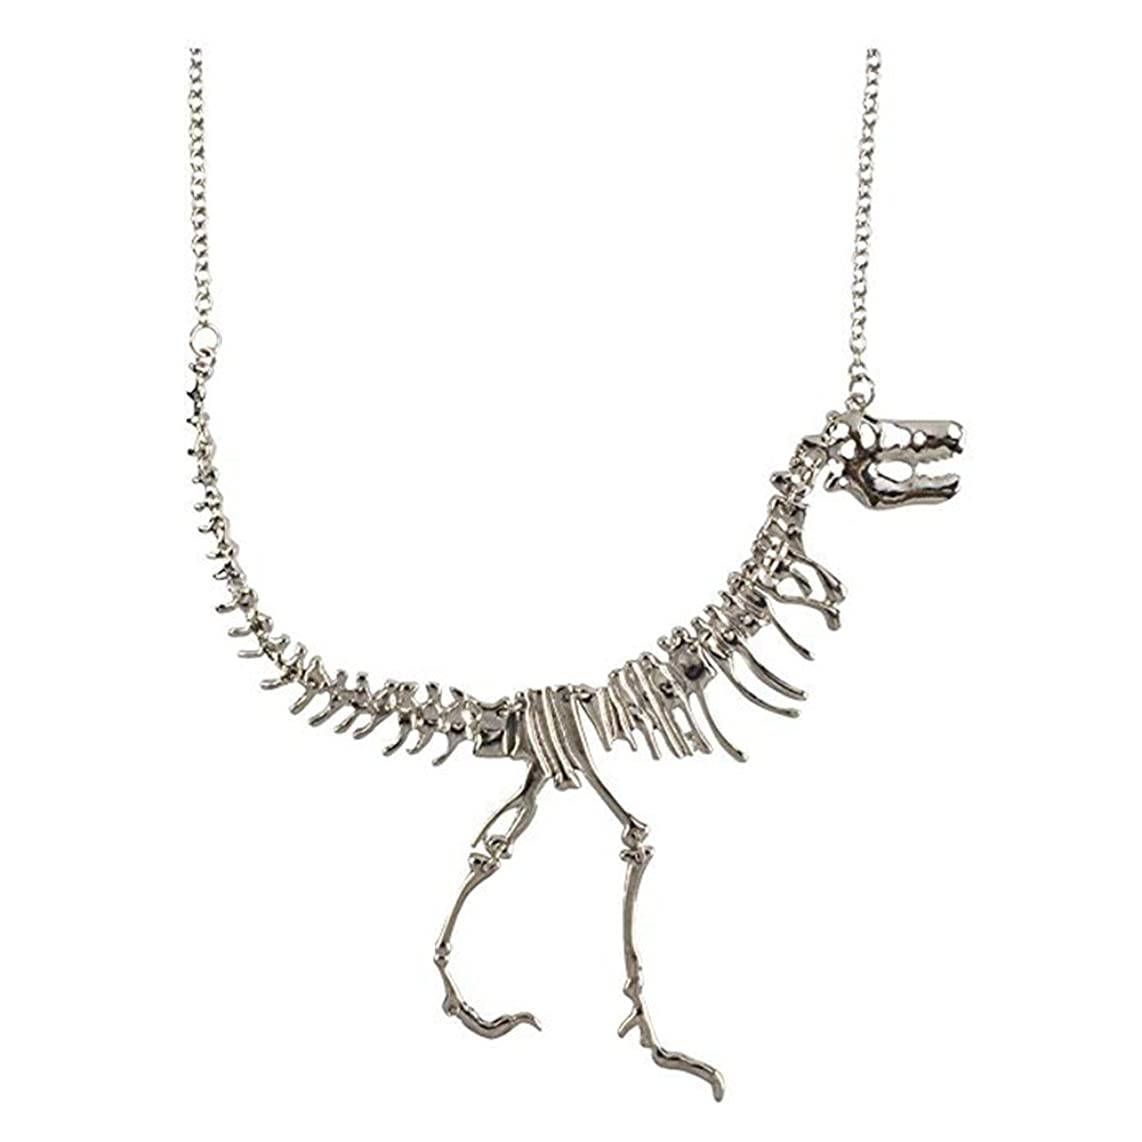 Sophie Land Dinosaur Skeleton Vintage Necklace Short Collar Chocker Jewerly for Woman and Teens (Silver)